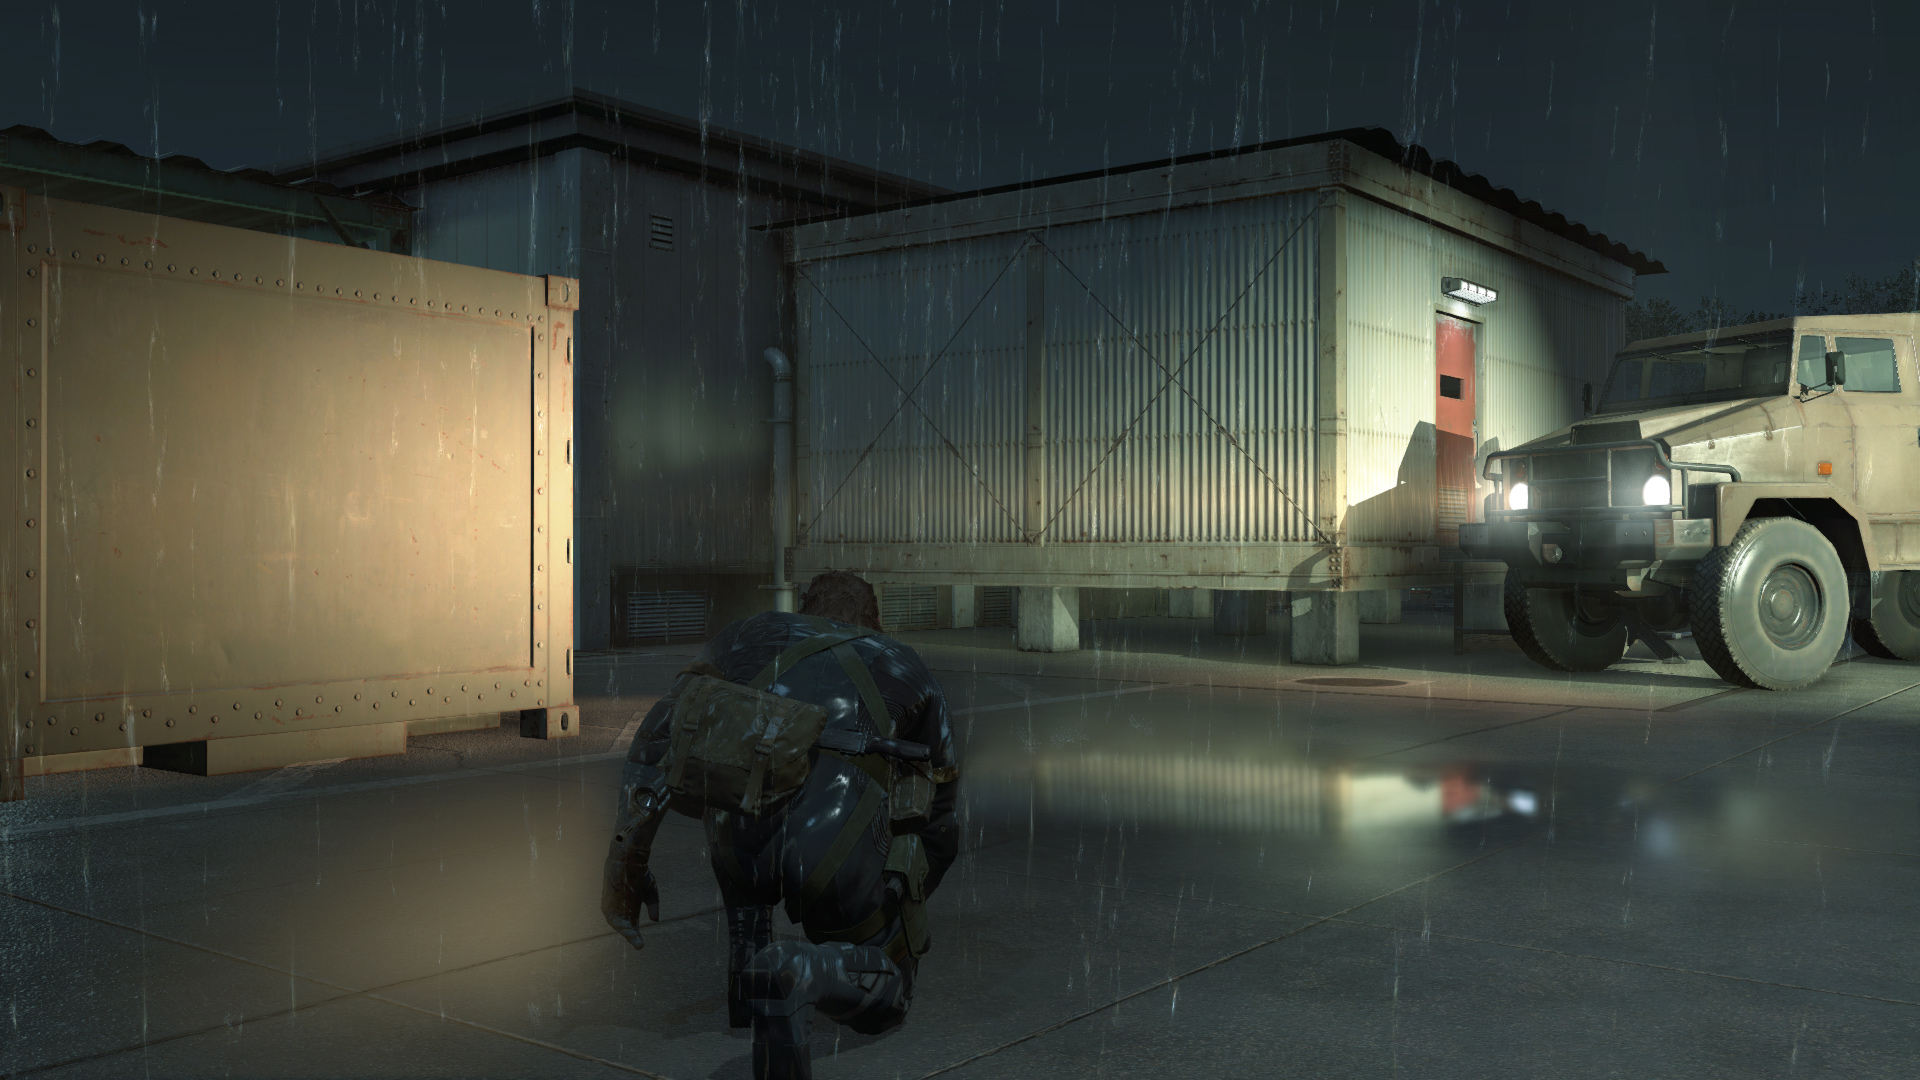 Metal Gear Solid 5: Ground Zeroes PS4 vs PC